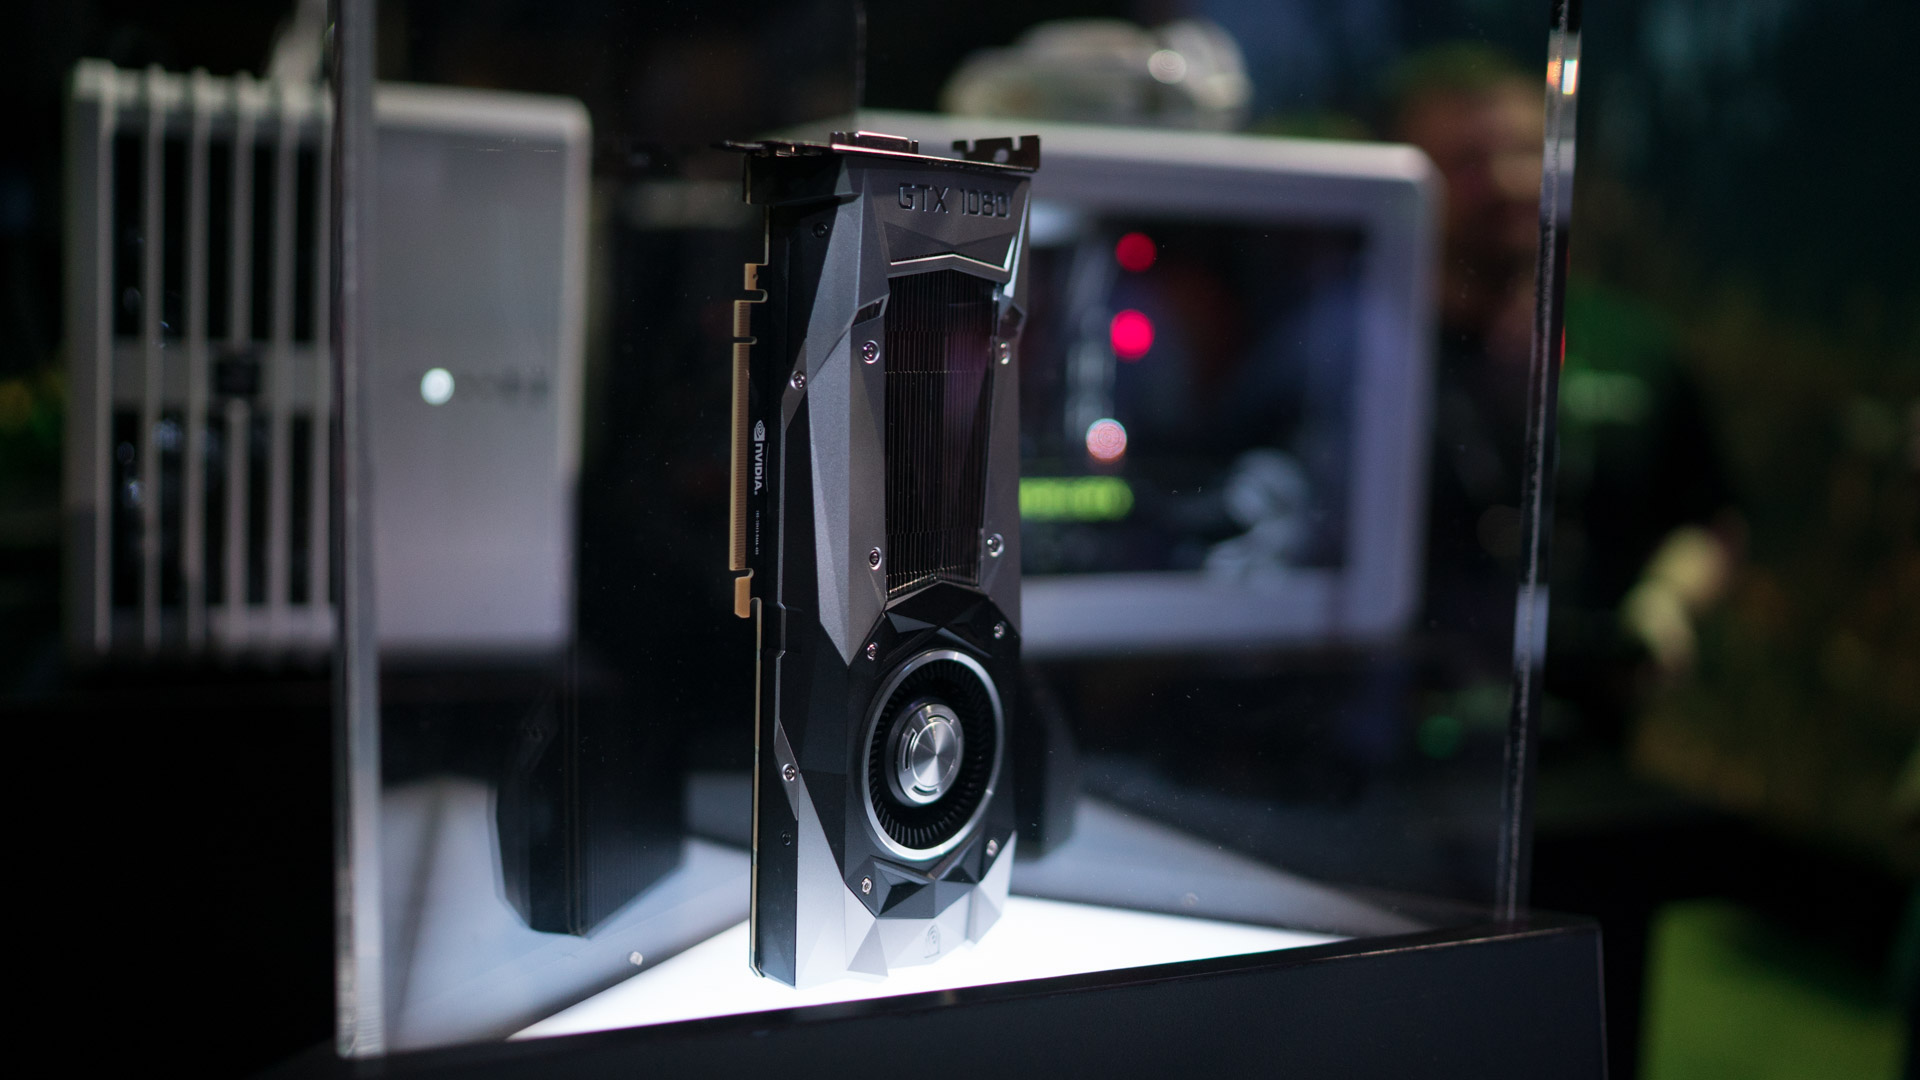 Nvidia might launch an RTX 2080 Ti with 11GB of GDDR6 memory next